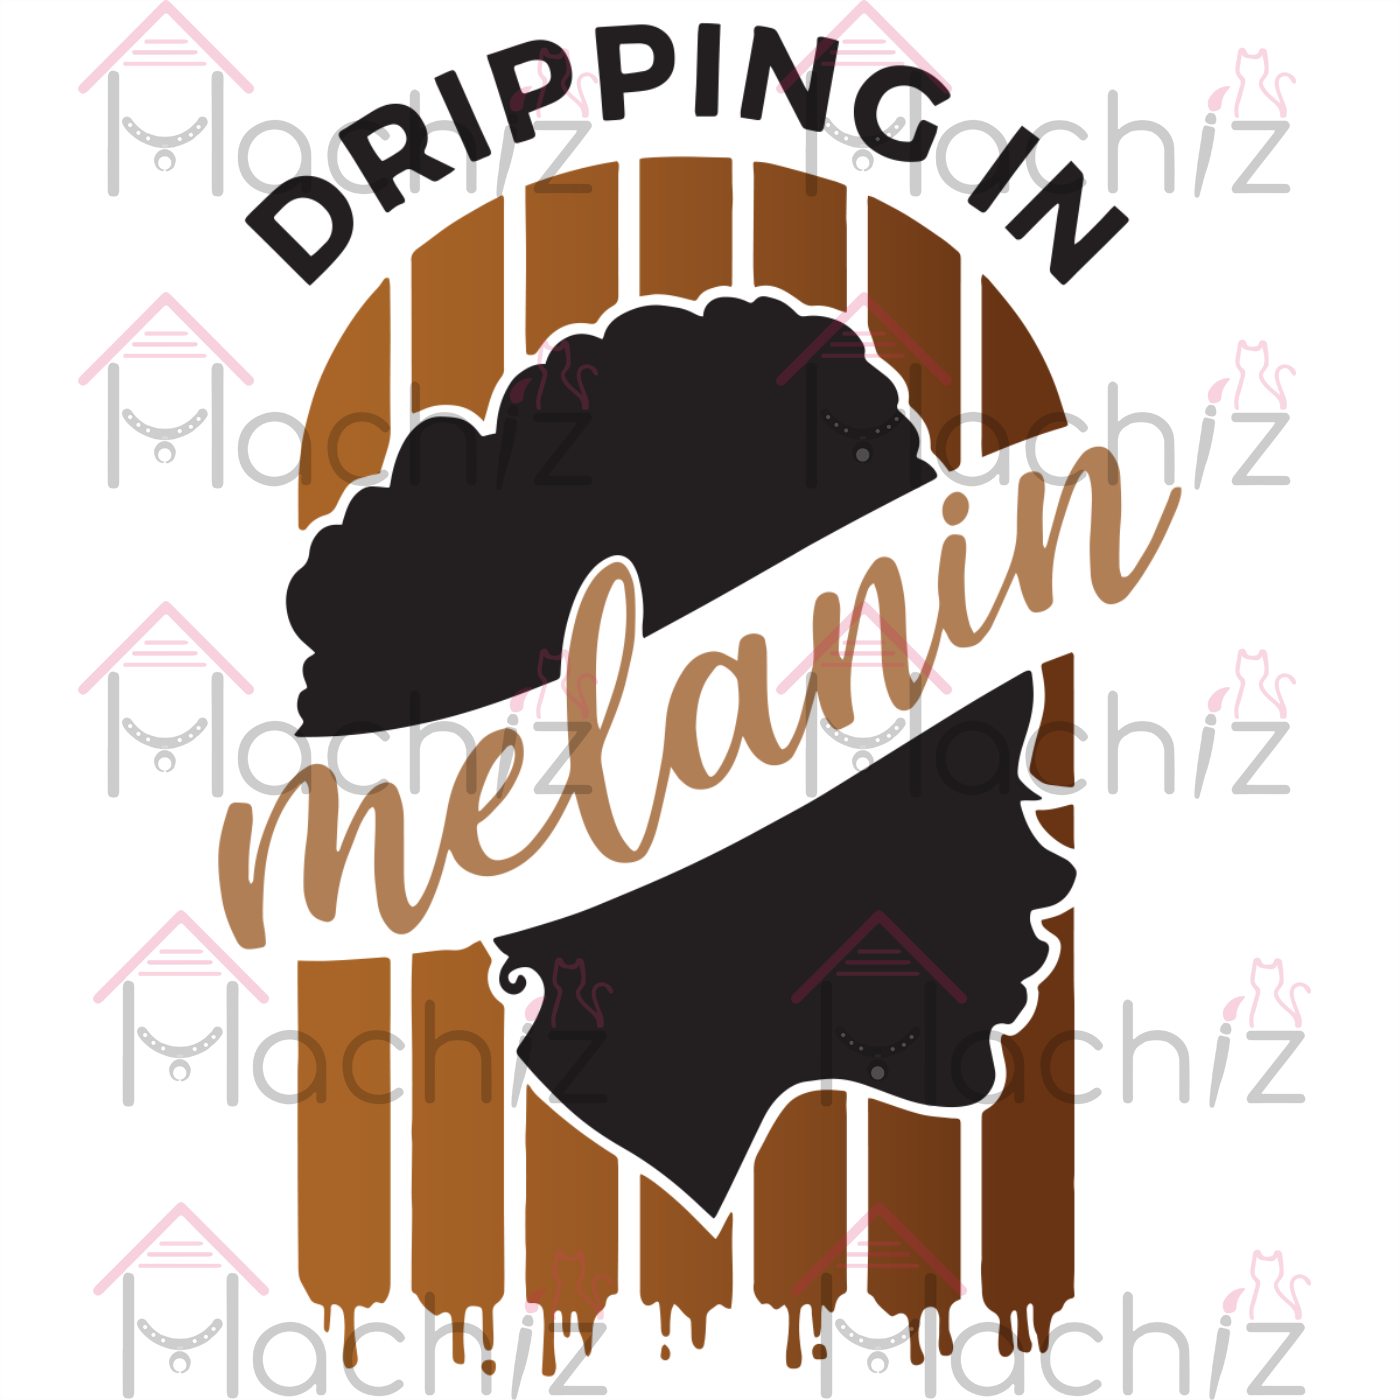 Dripping in melanin, Trending Svg,Black girl Svg,black woman svg, black girl magic, black queen svg, melanin, melanin svg, american girl,melanin queen svg, african queen svg, african girls svg,